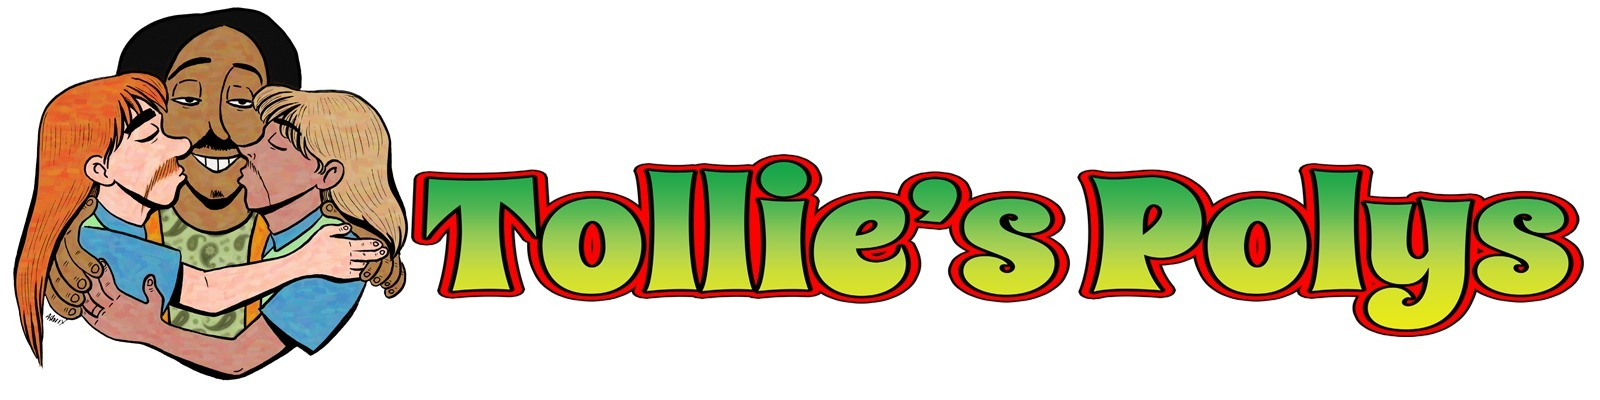 Tollie's Polys (@tolliespolys) Cover Image